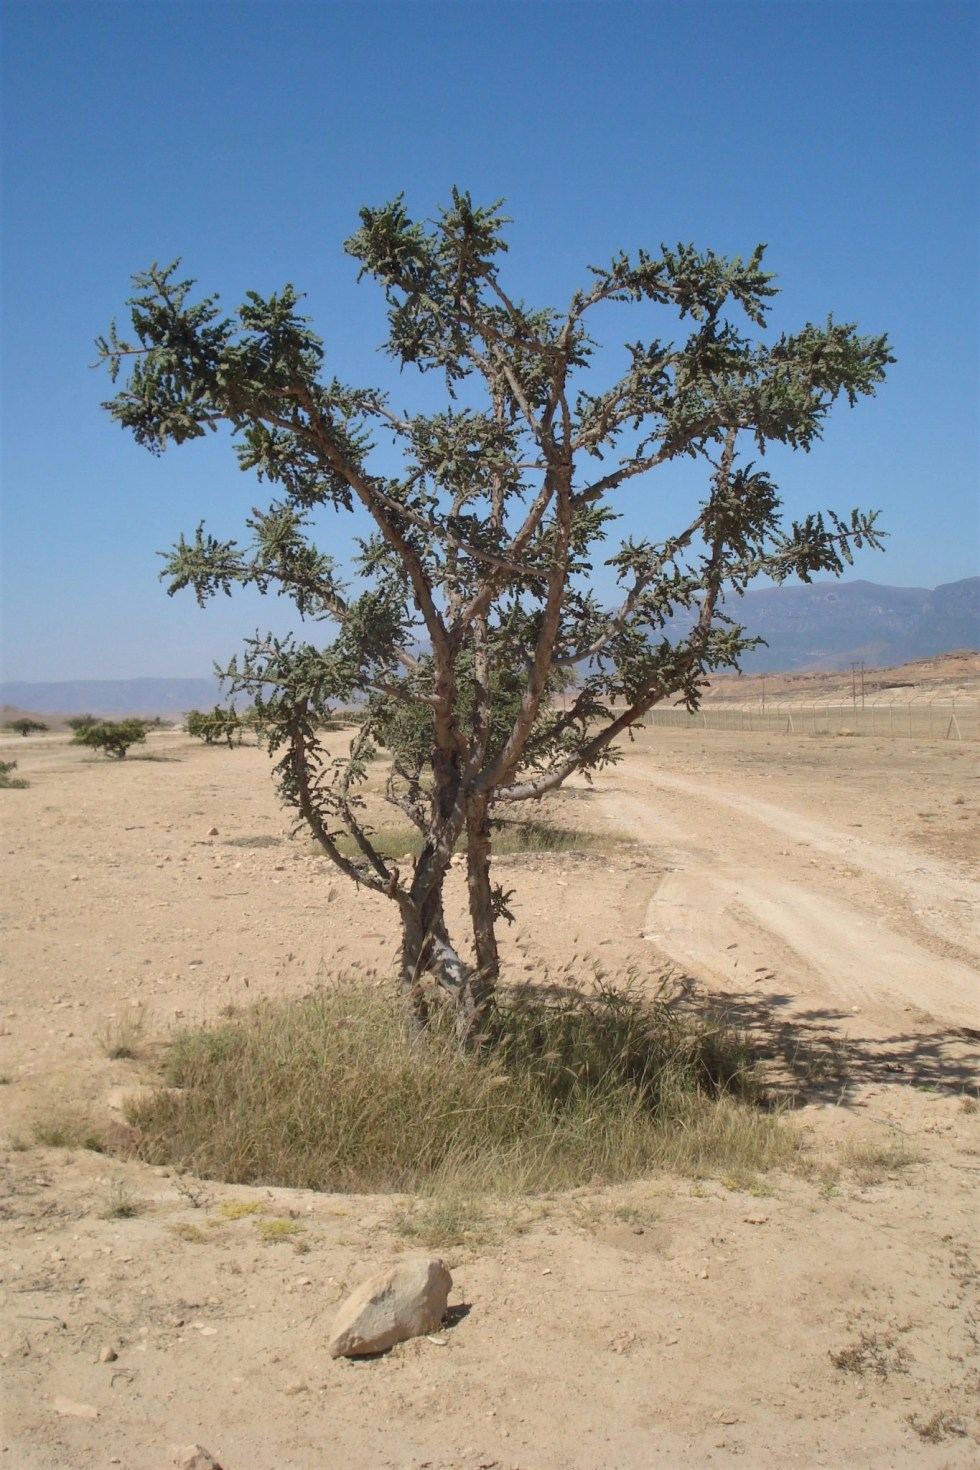 Lone frankincense tree in the middle of a lonely desert path in the Dhofar region of Oman